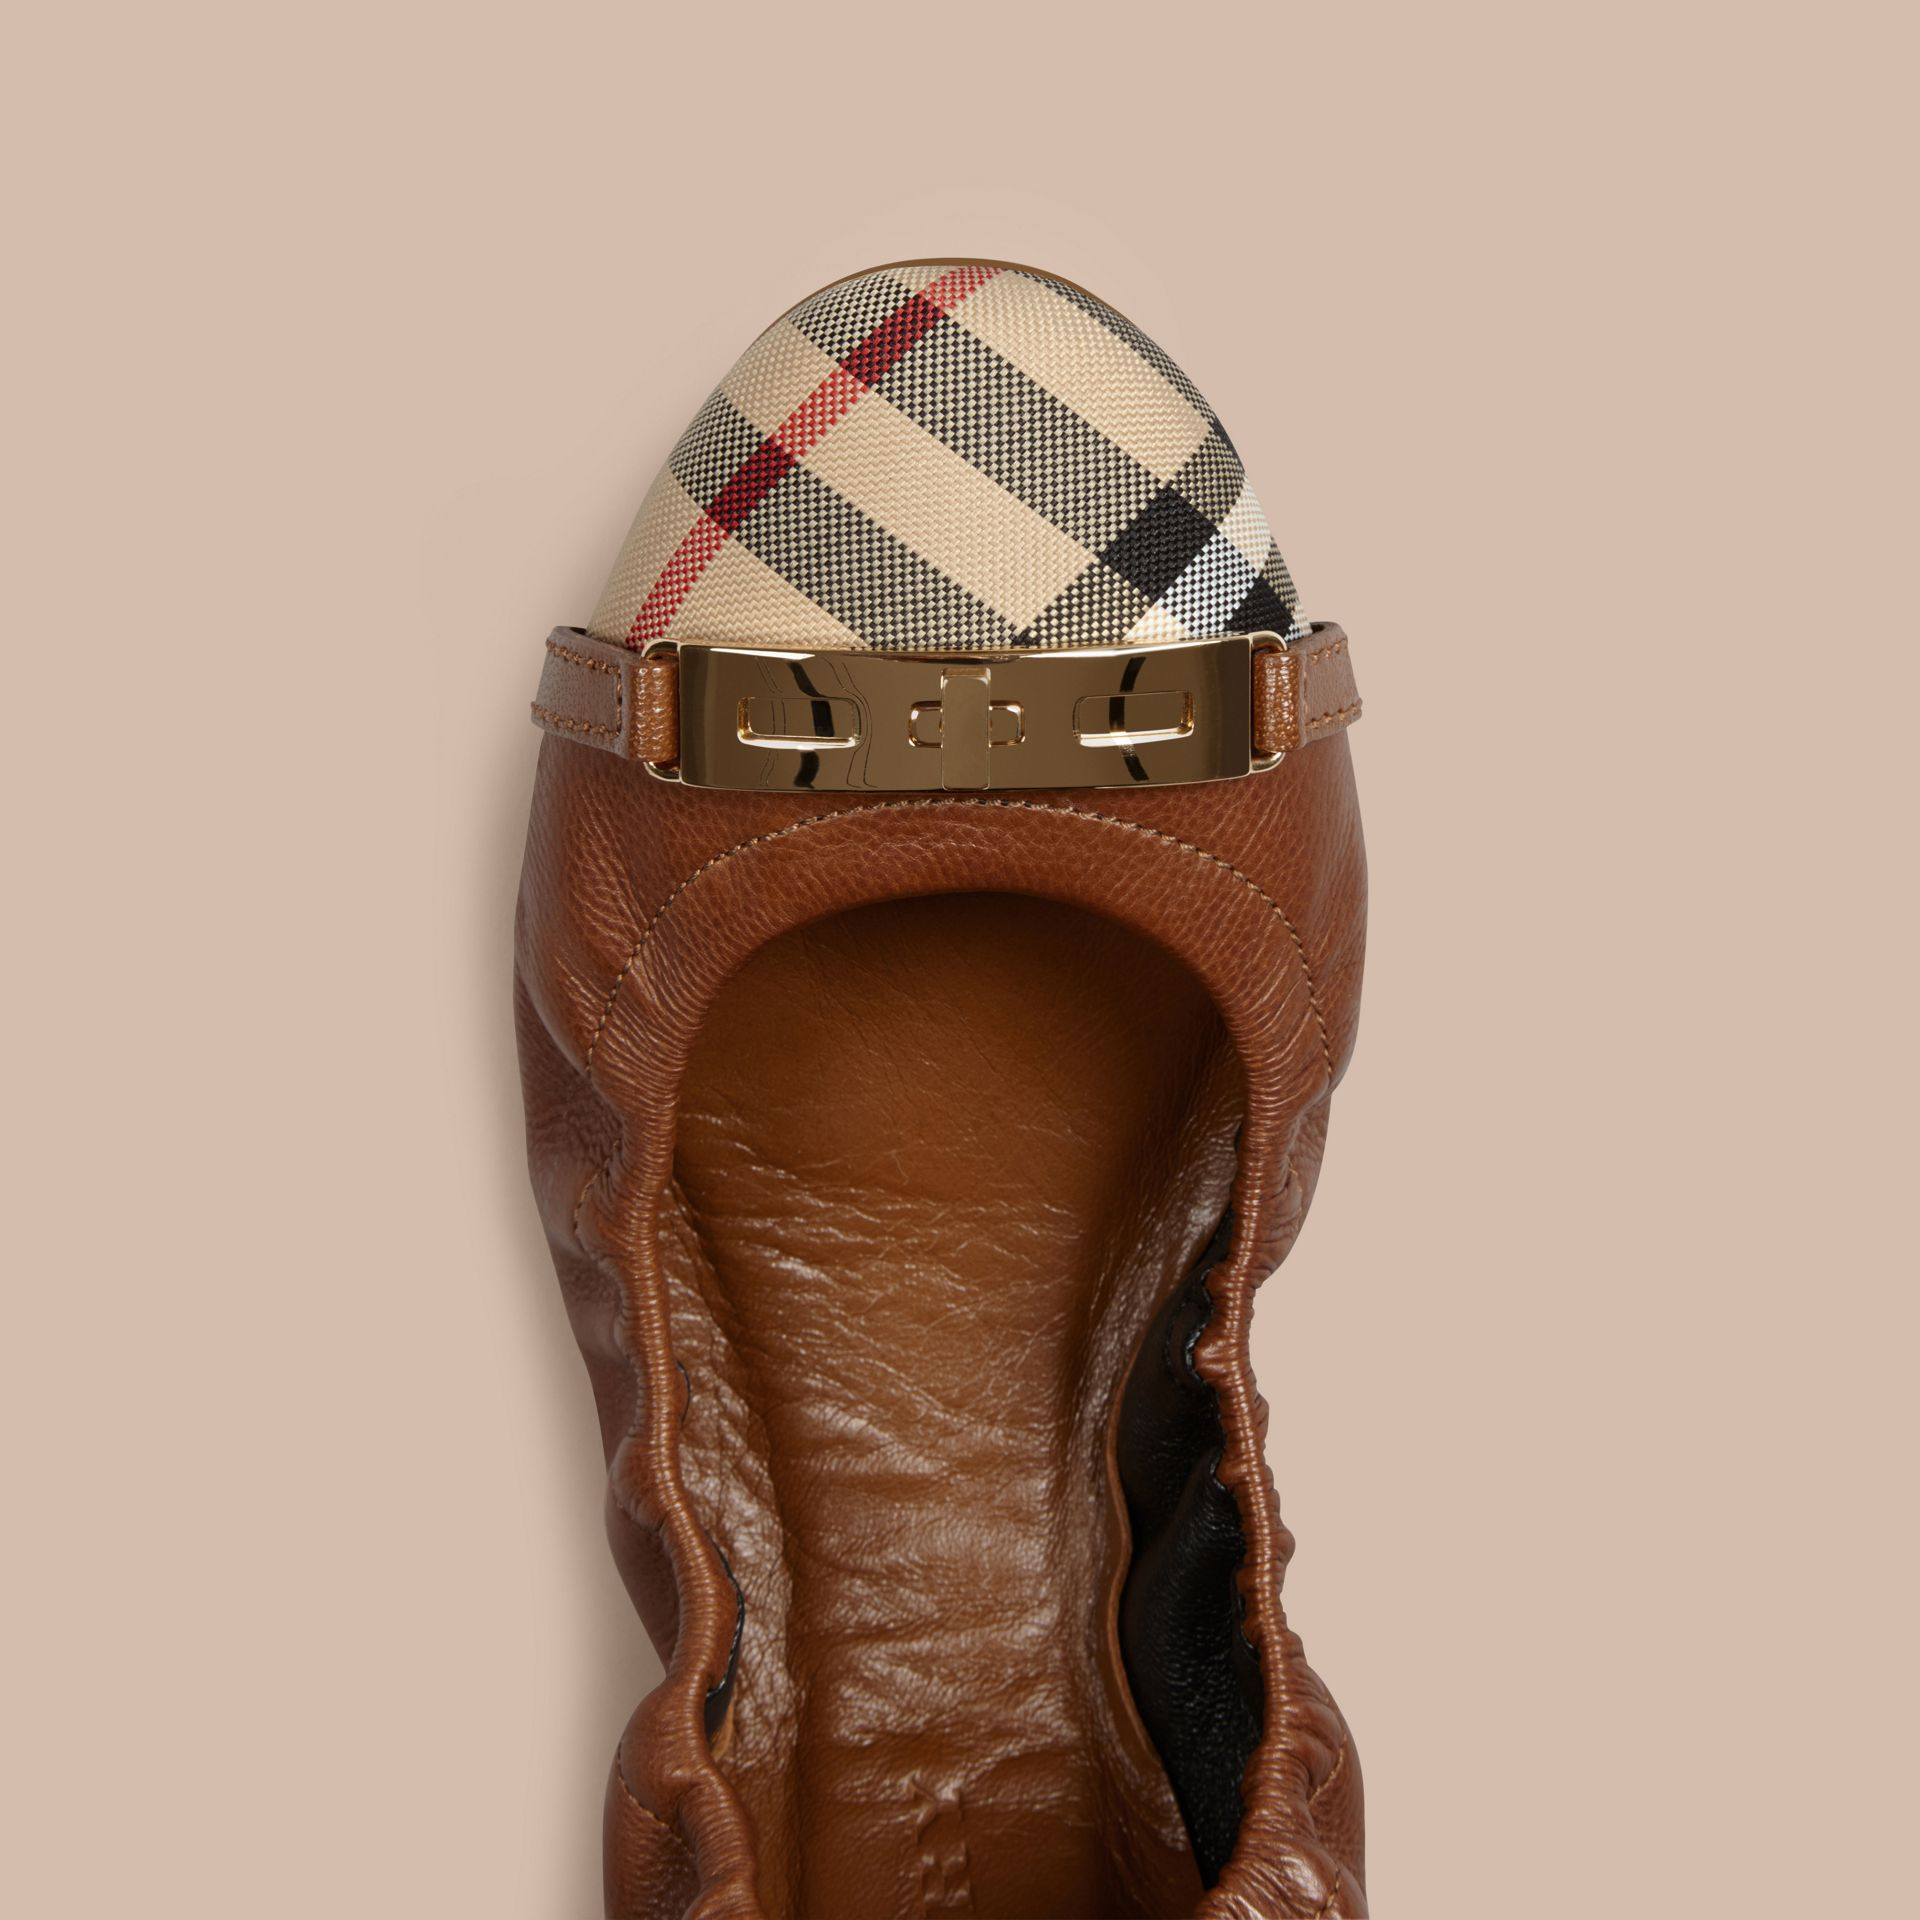 Ballerine in pelle con motivo Horseferry check (Marroncino) - Donna | Burberry - immagine della galleria 2